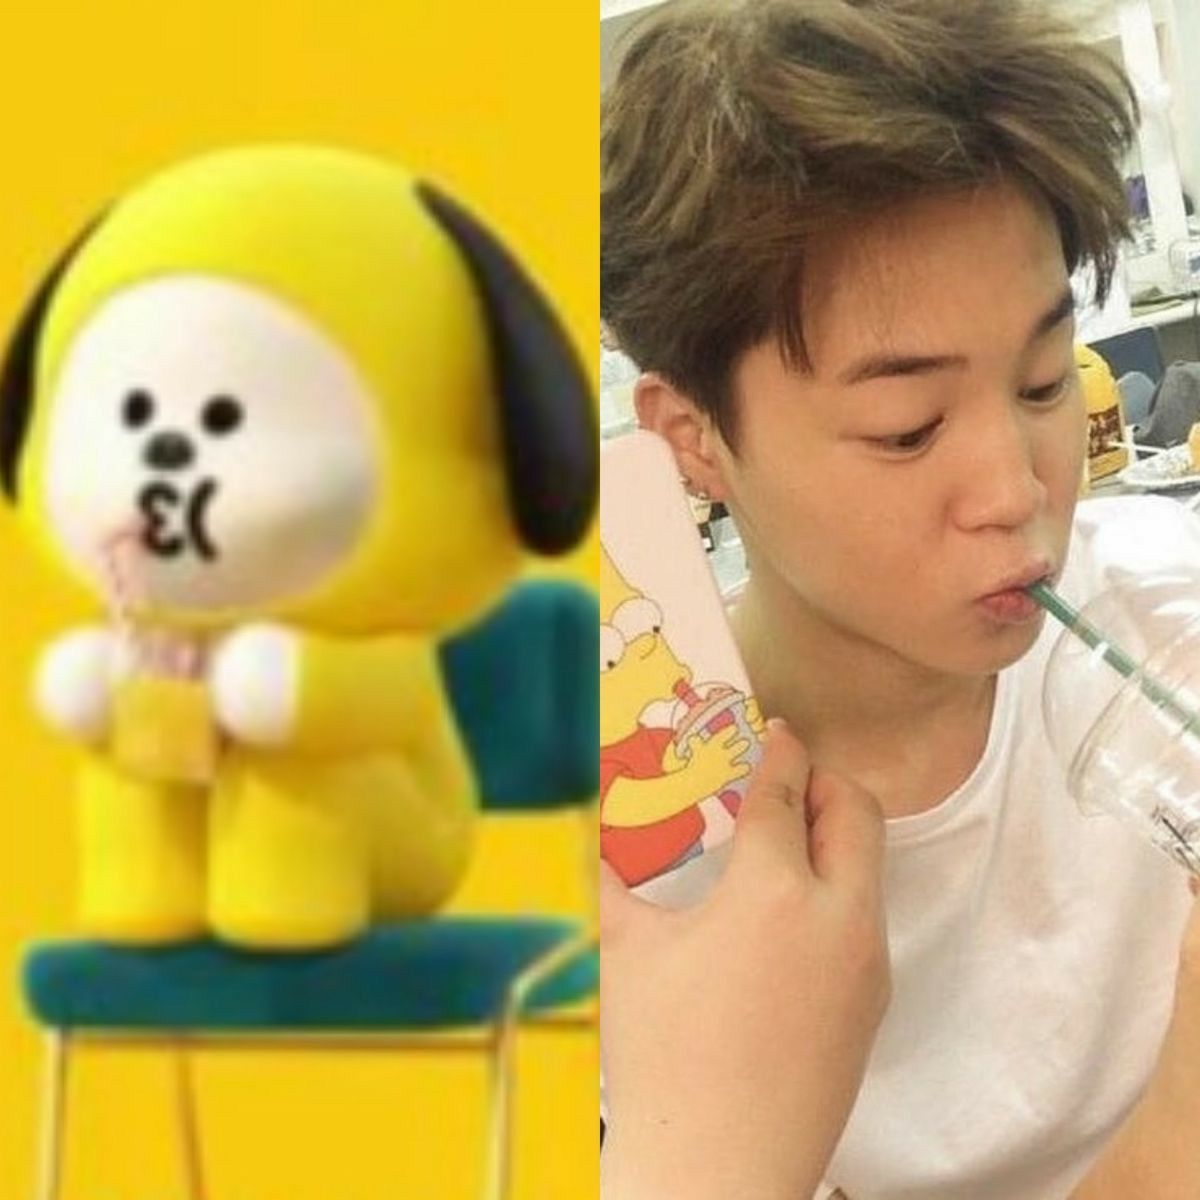 Awesome Jimin Chimmy wallpapers to download for free greenvirals